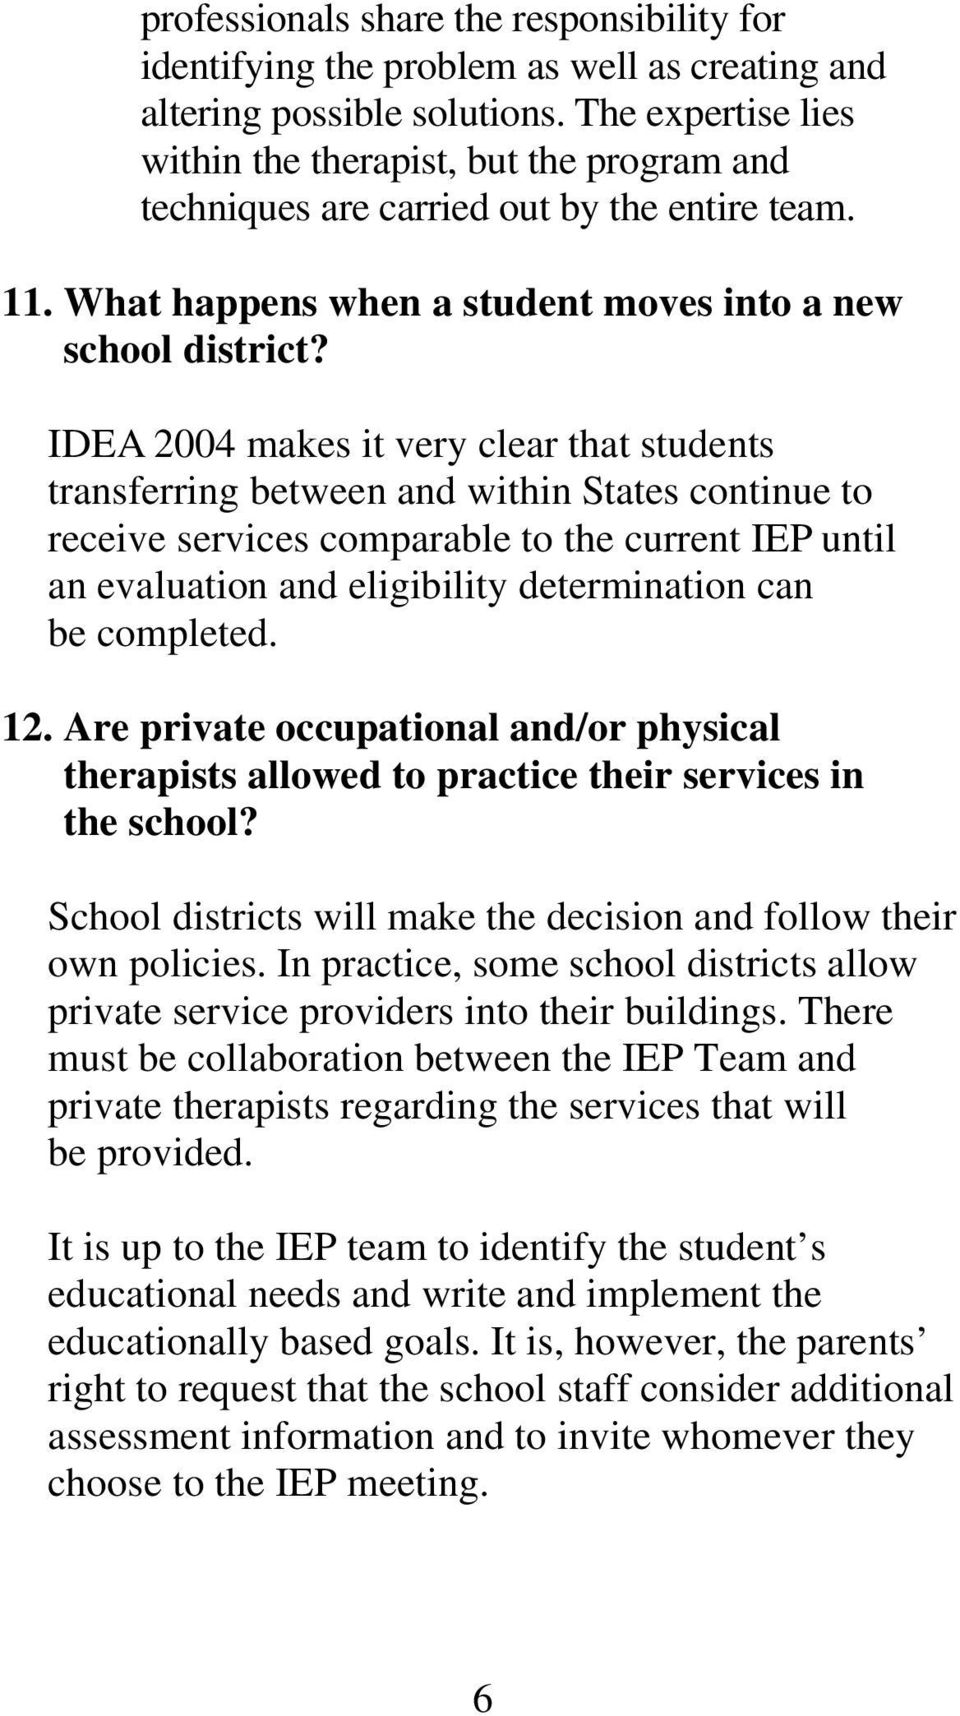 IDEA 2004 makes it very clear that students transferring between and within States continue to receive services comparable to the current IEP until an evaluation and eligibility determination can be